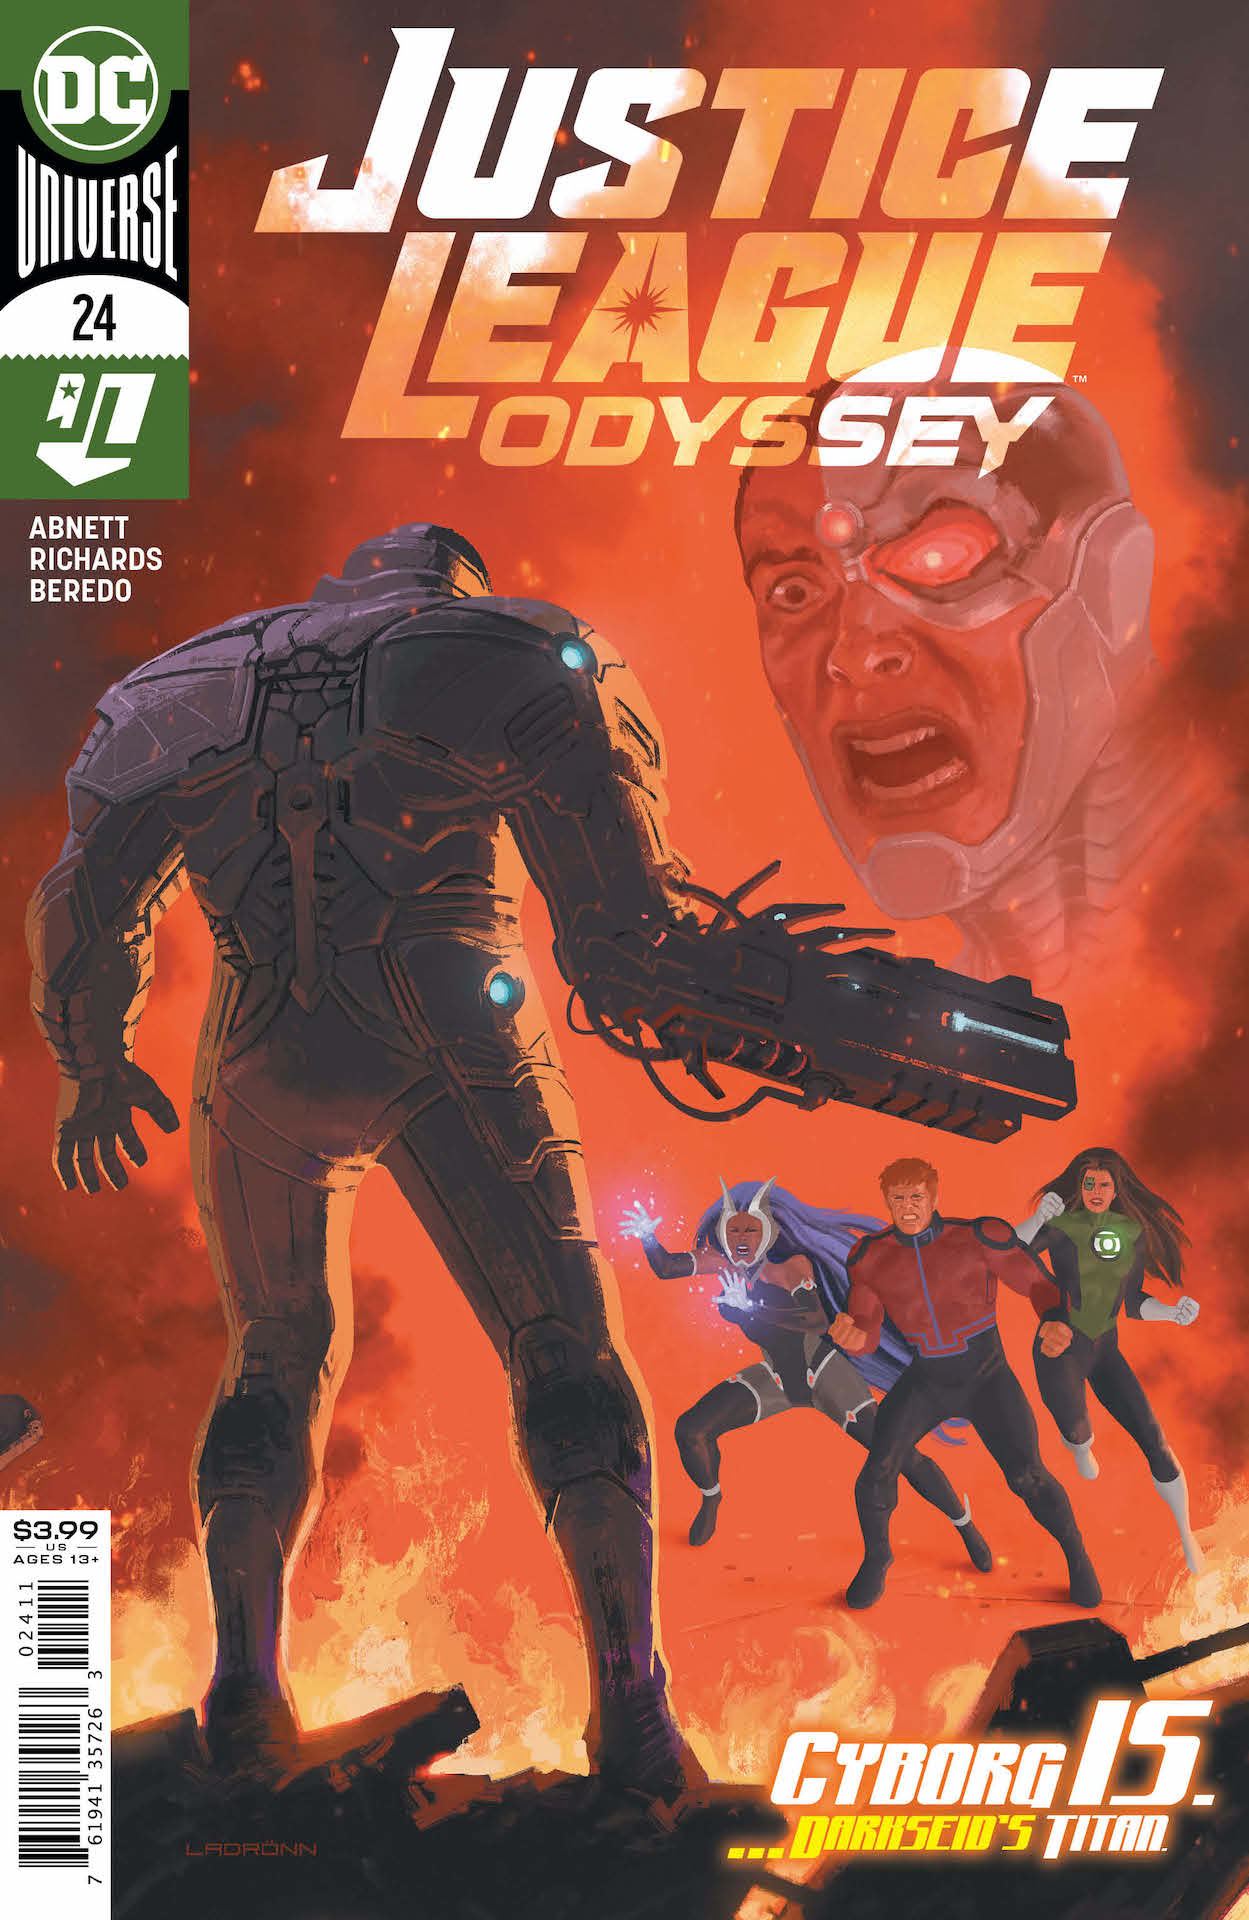 DC Preview: Justice League Odyssey #24